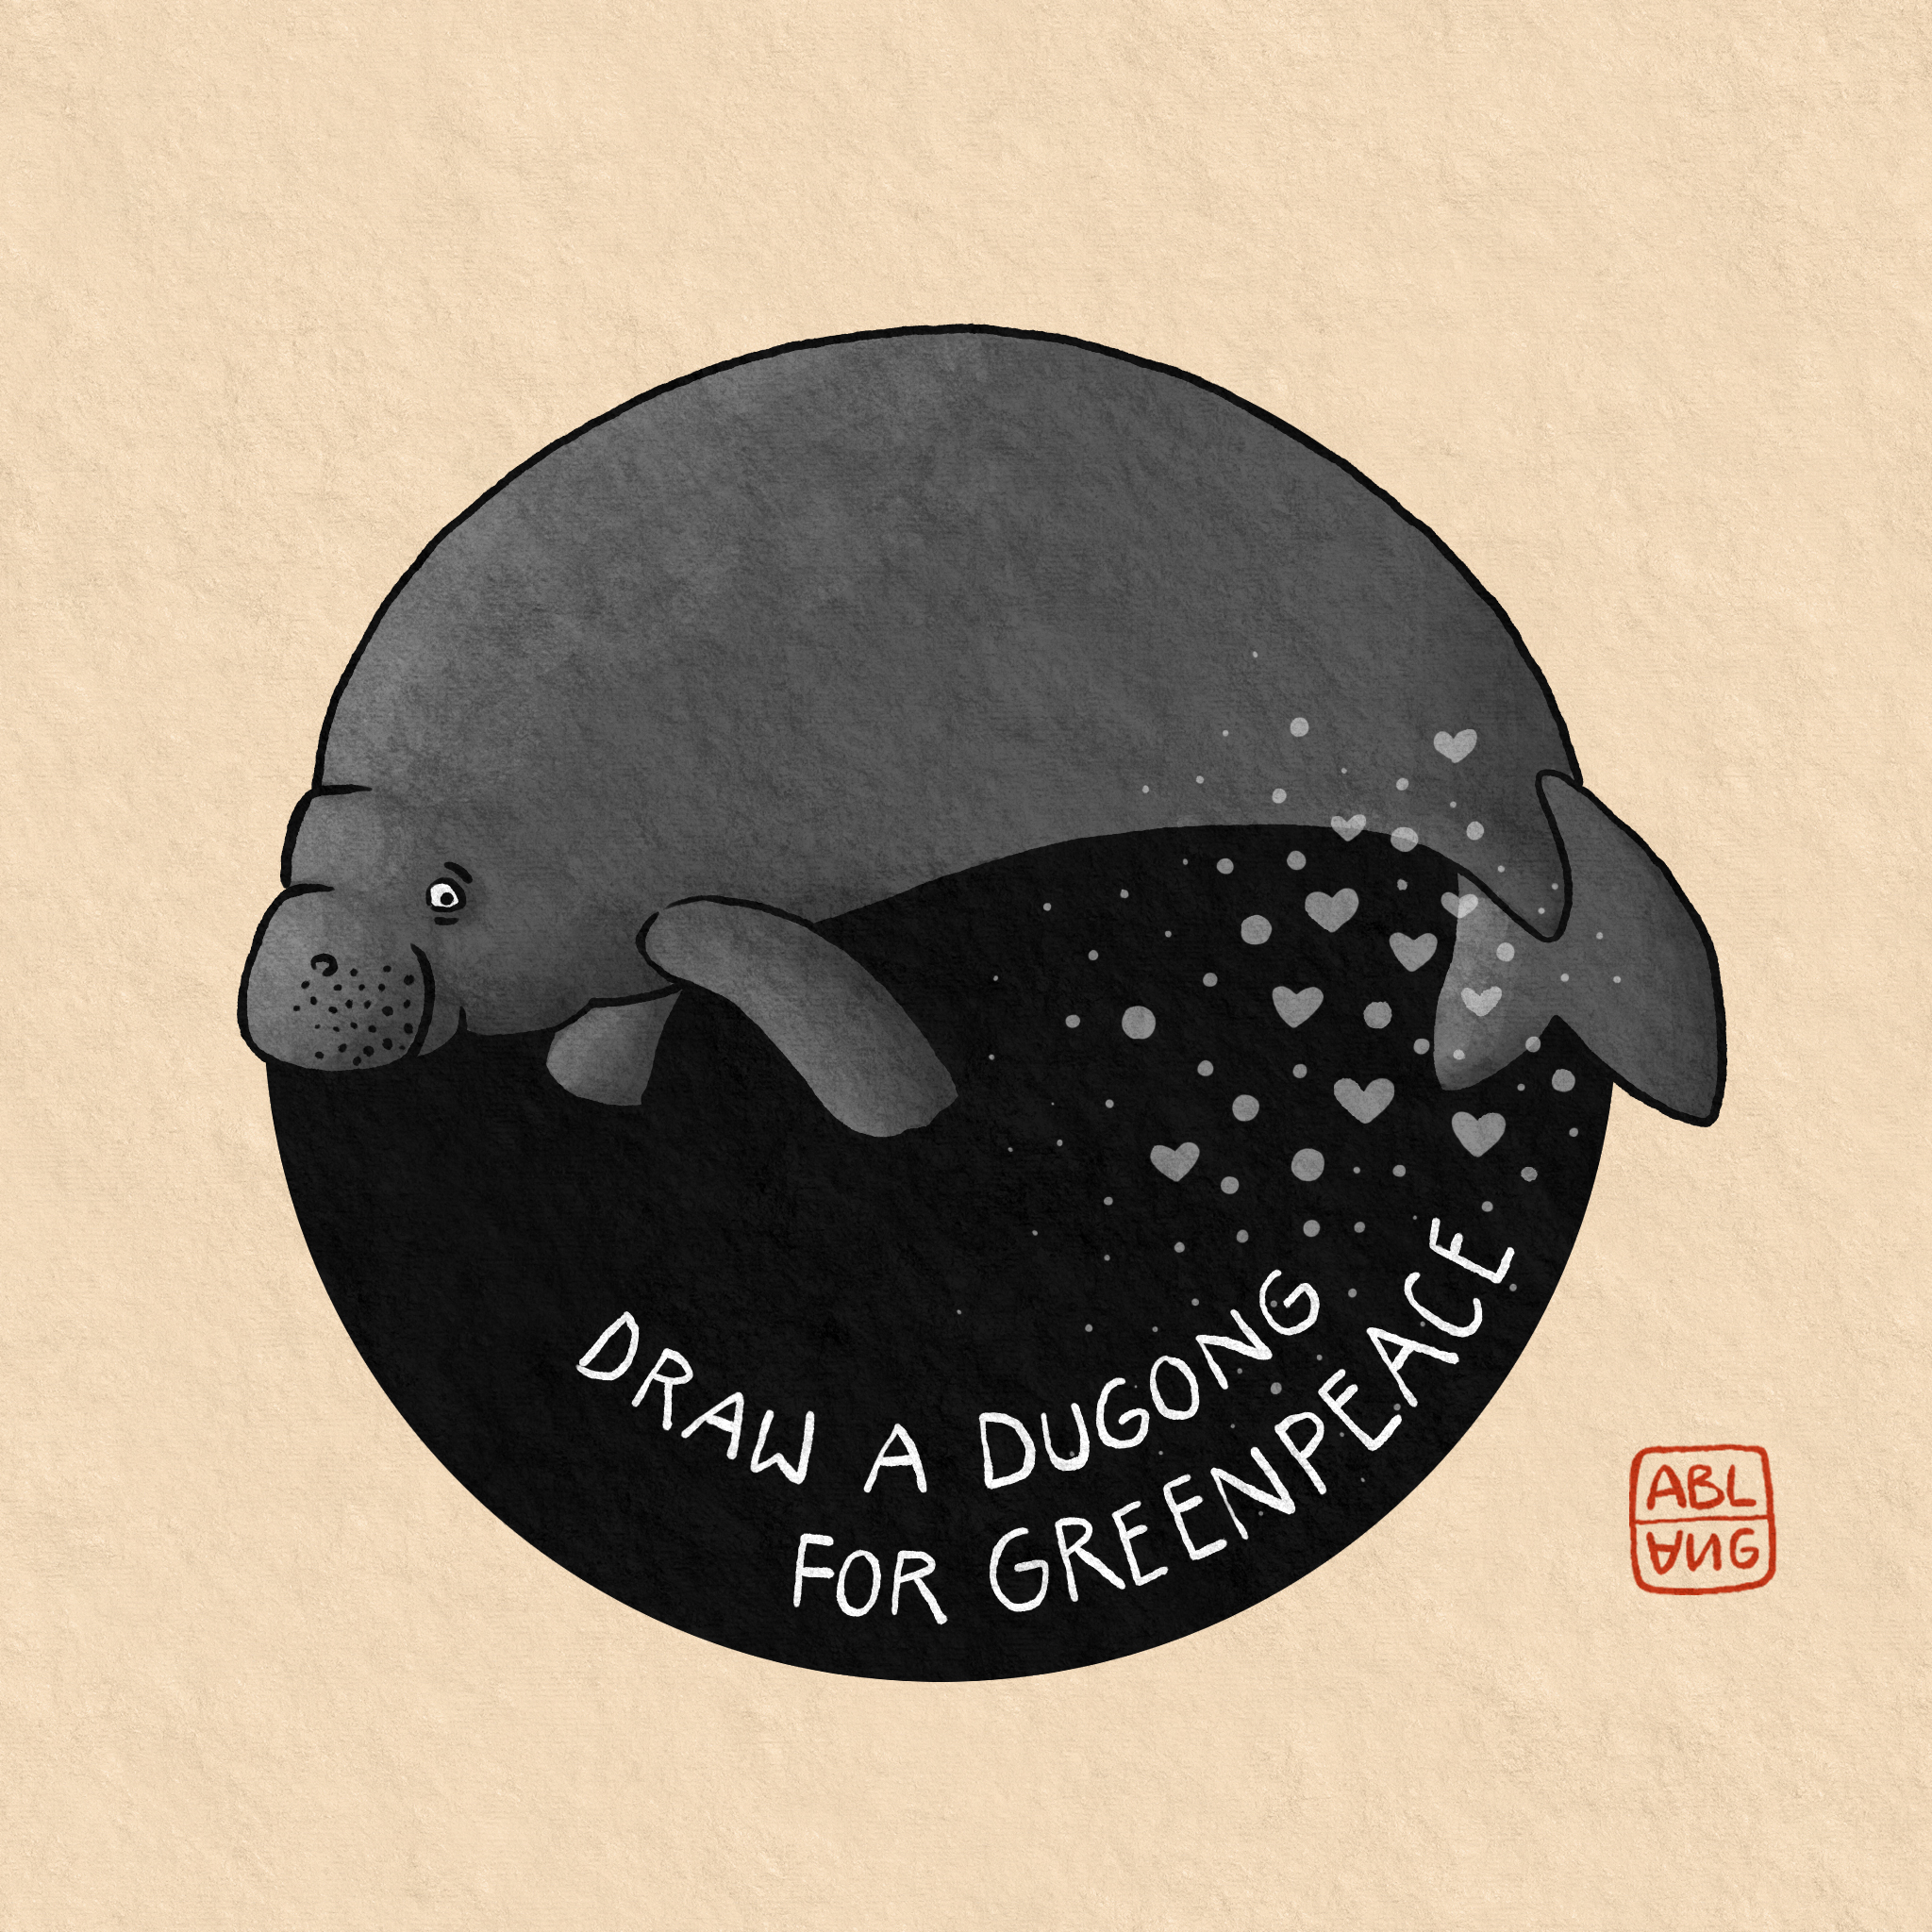 """A grwy dugong with a small smile on a round black disc on a beige paper-textured background. The words """"Draw a Dugong for Greenpeace"""" are written underneath the dugong with a pattern of heart-shaped bubbles rising from it."""